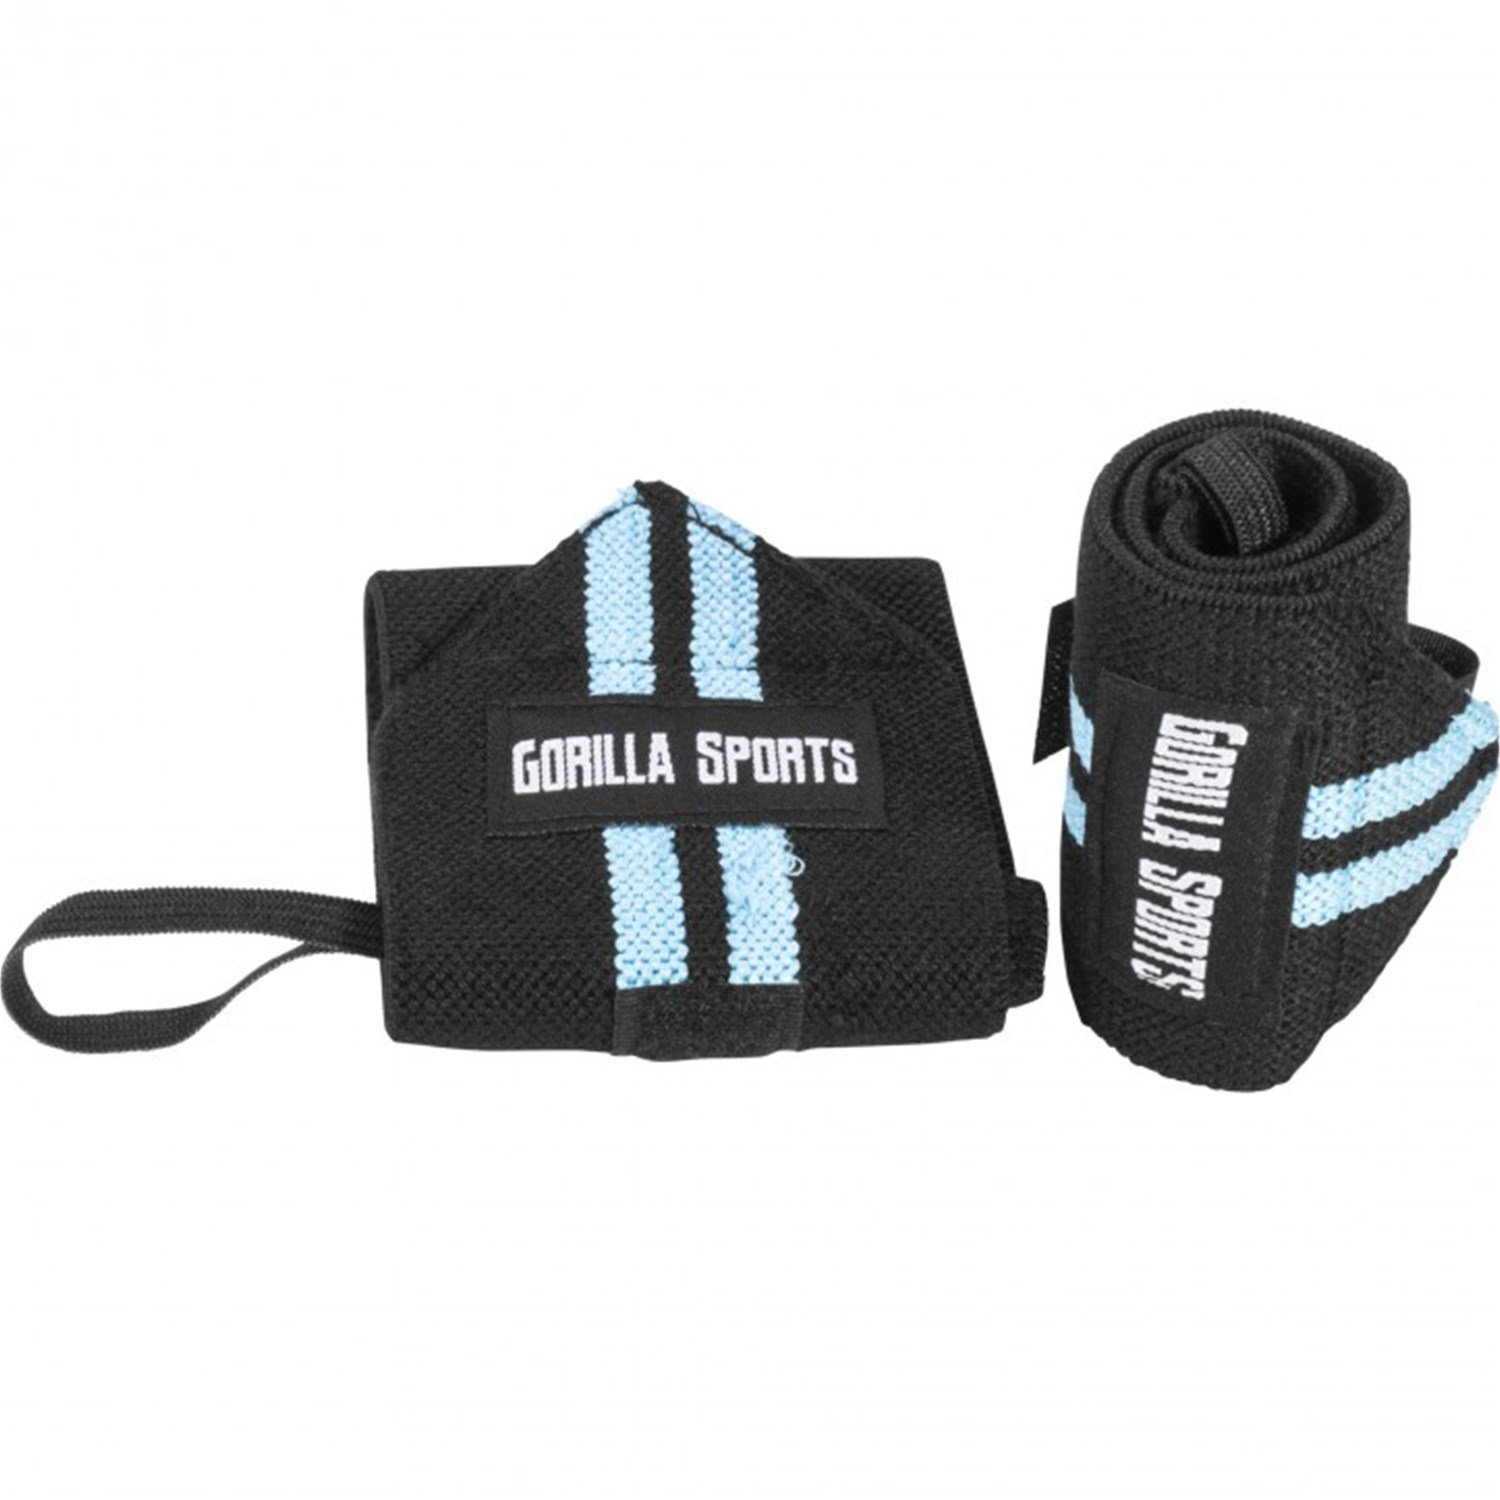 Gorilla Sports Wrist-Wraps - 4